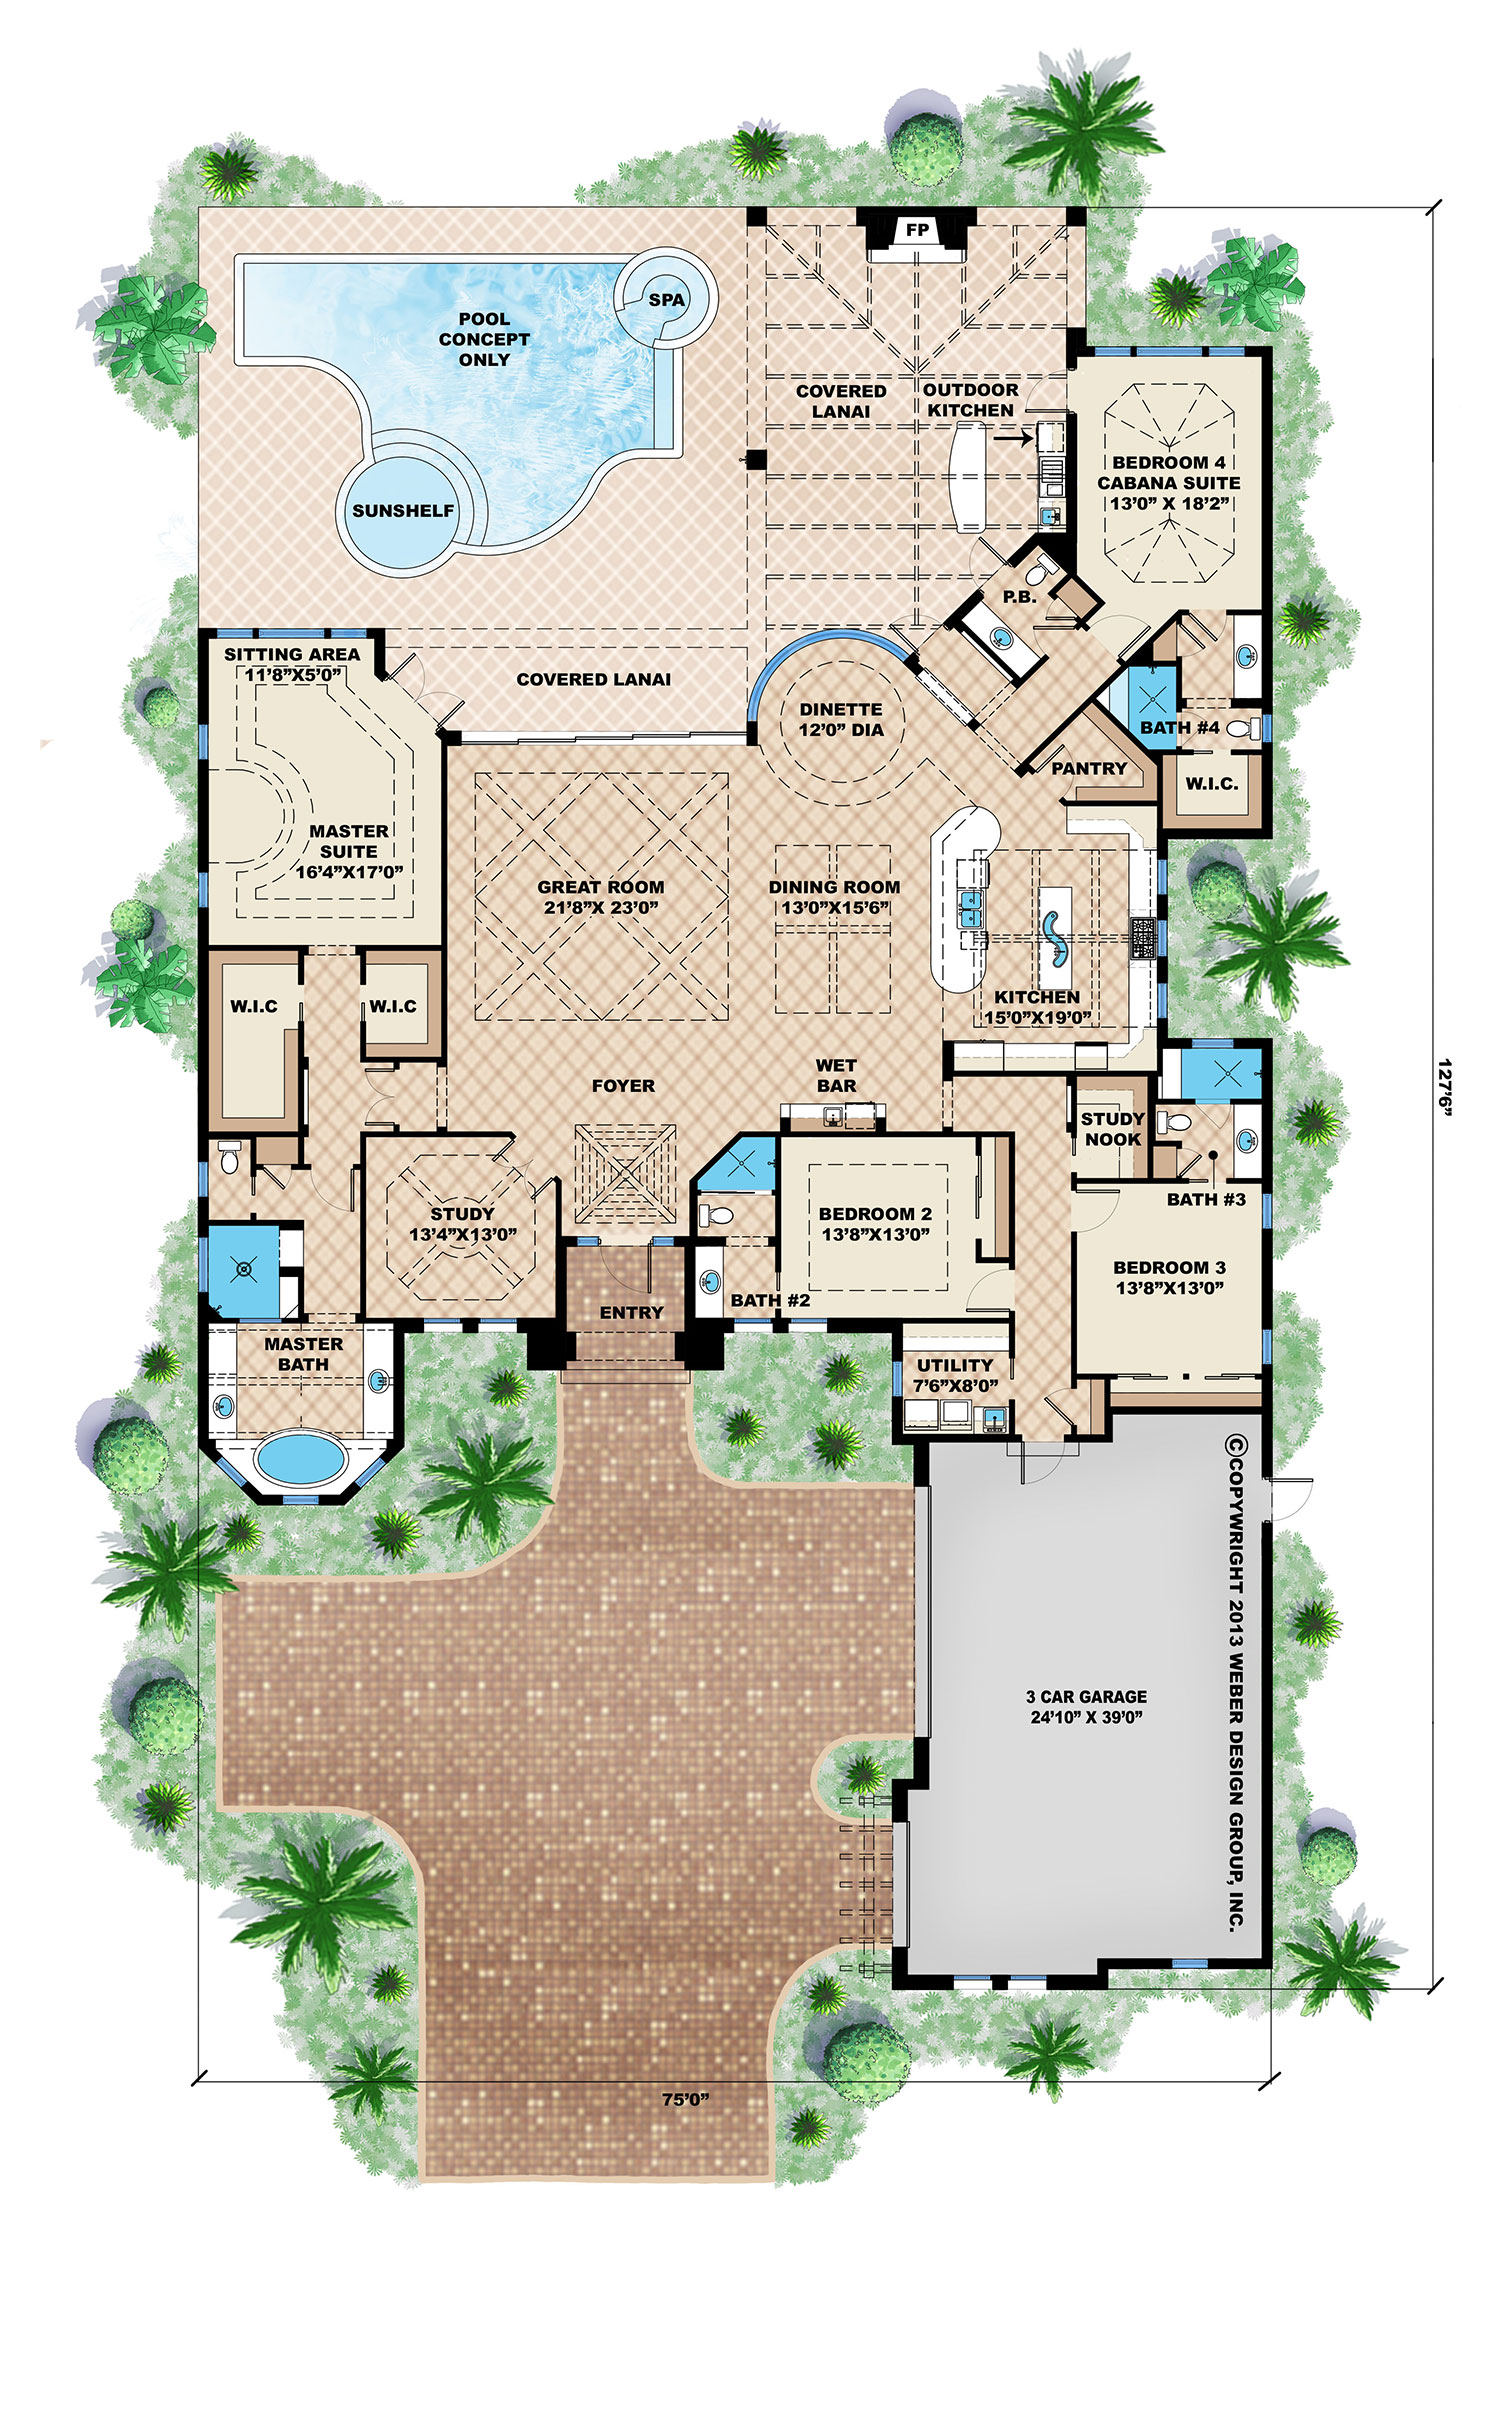 basseterre house plan mediterranean architecture luxury plan to buy a home house of samples